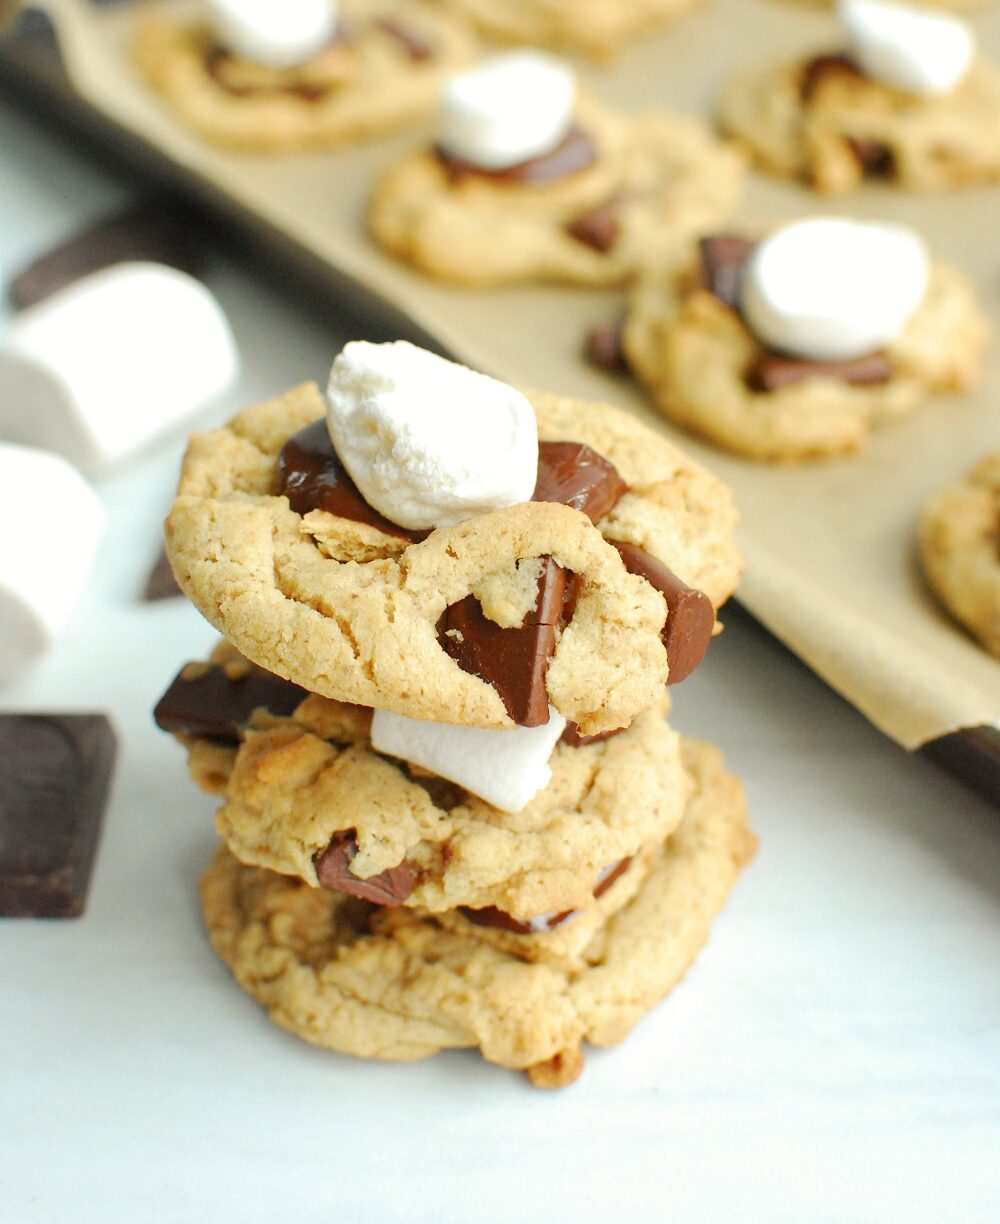 a stack of three vegan smores cookies next to some stray marshmallows and chocolate